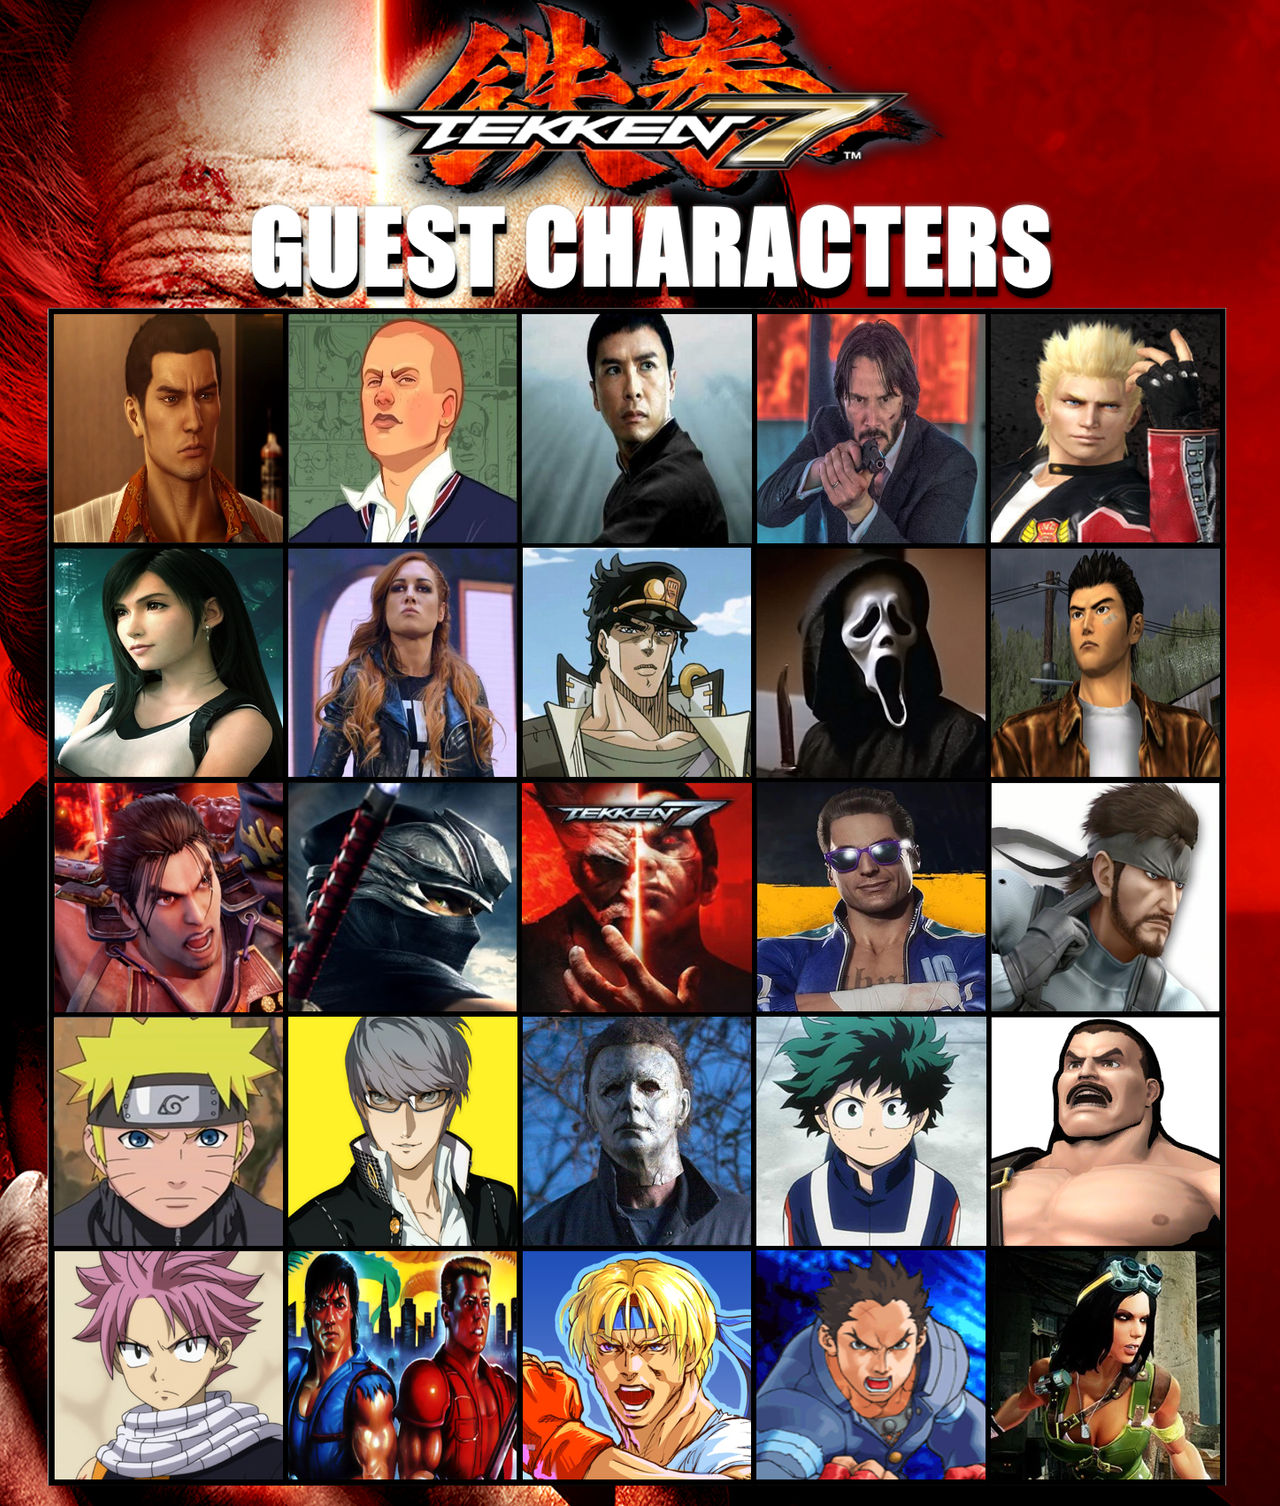 Tekken 7 Dlc Guest Characters I Want To See By Kdgamer015 On